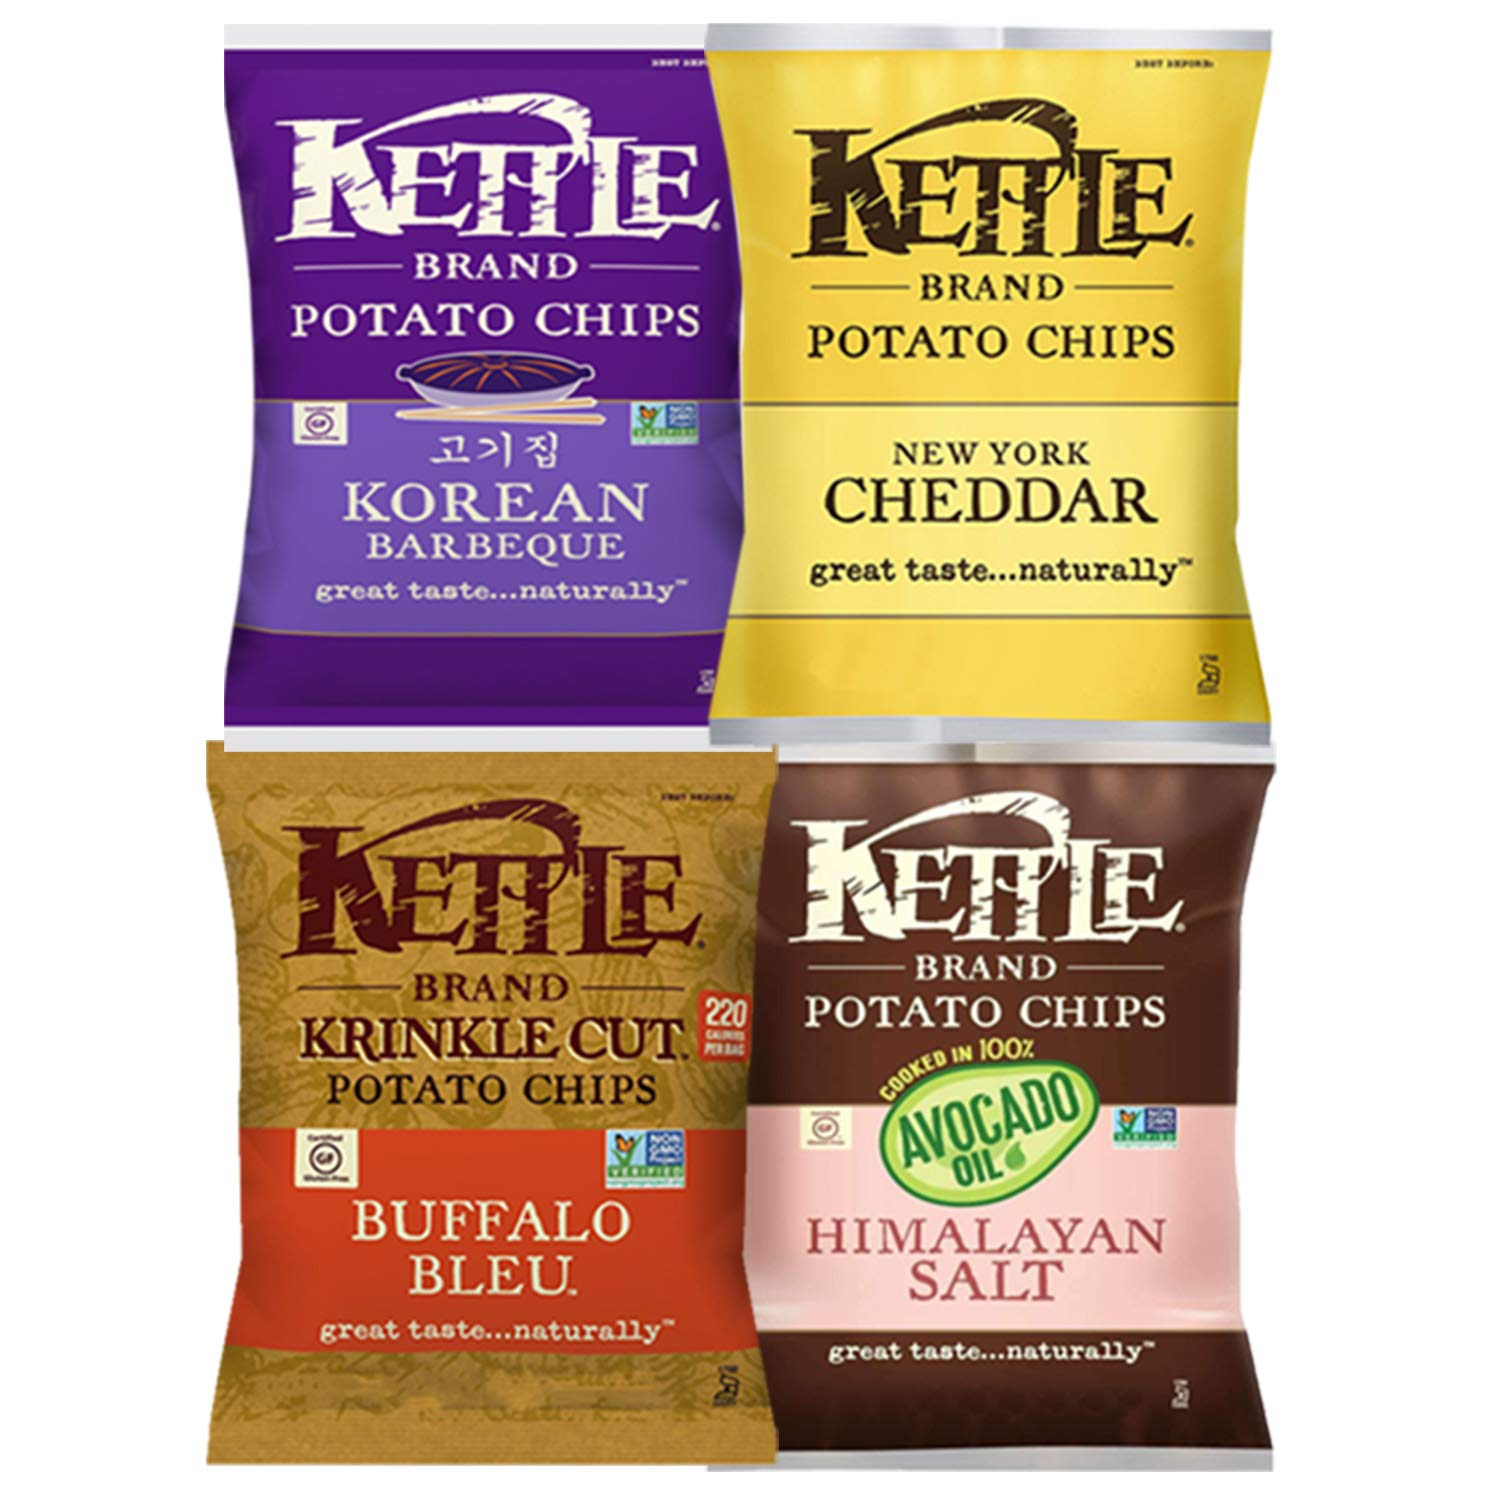 Kettle Brand Potato Chips, Individual Single Serve Bags, Many Different Flavors Sampler Variety Pack (12 Count) by Custom Varietea (Image #2)